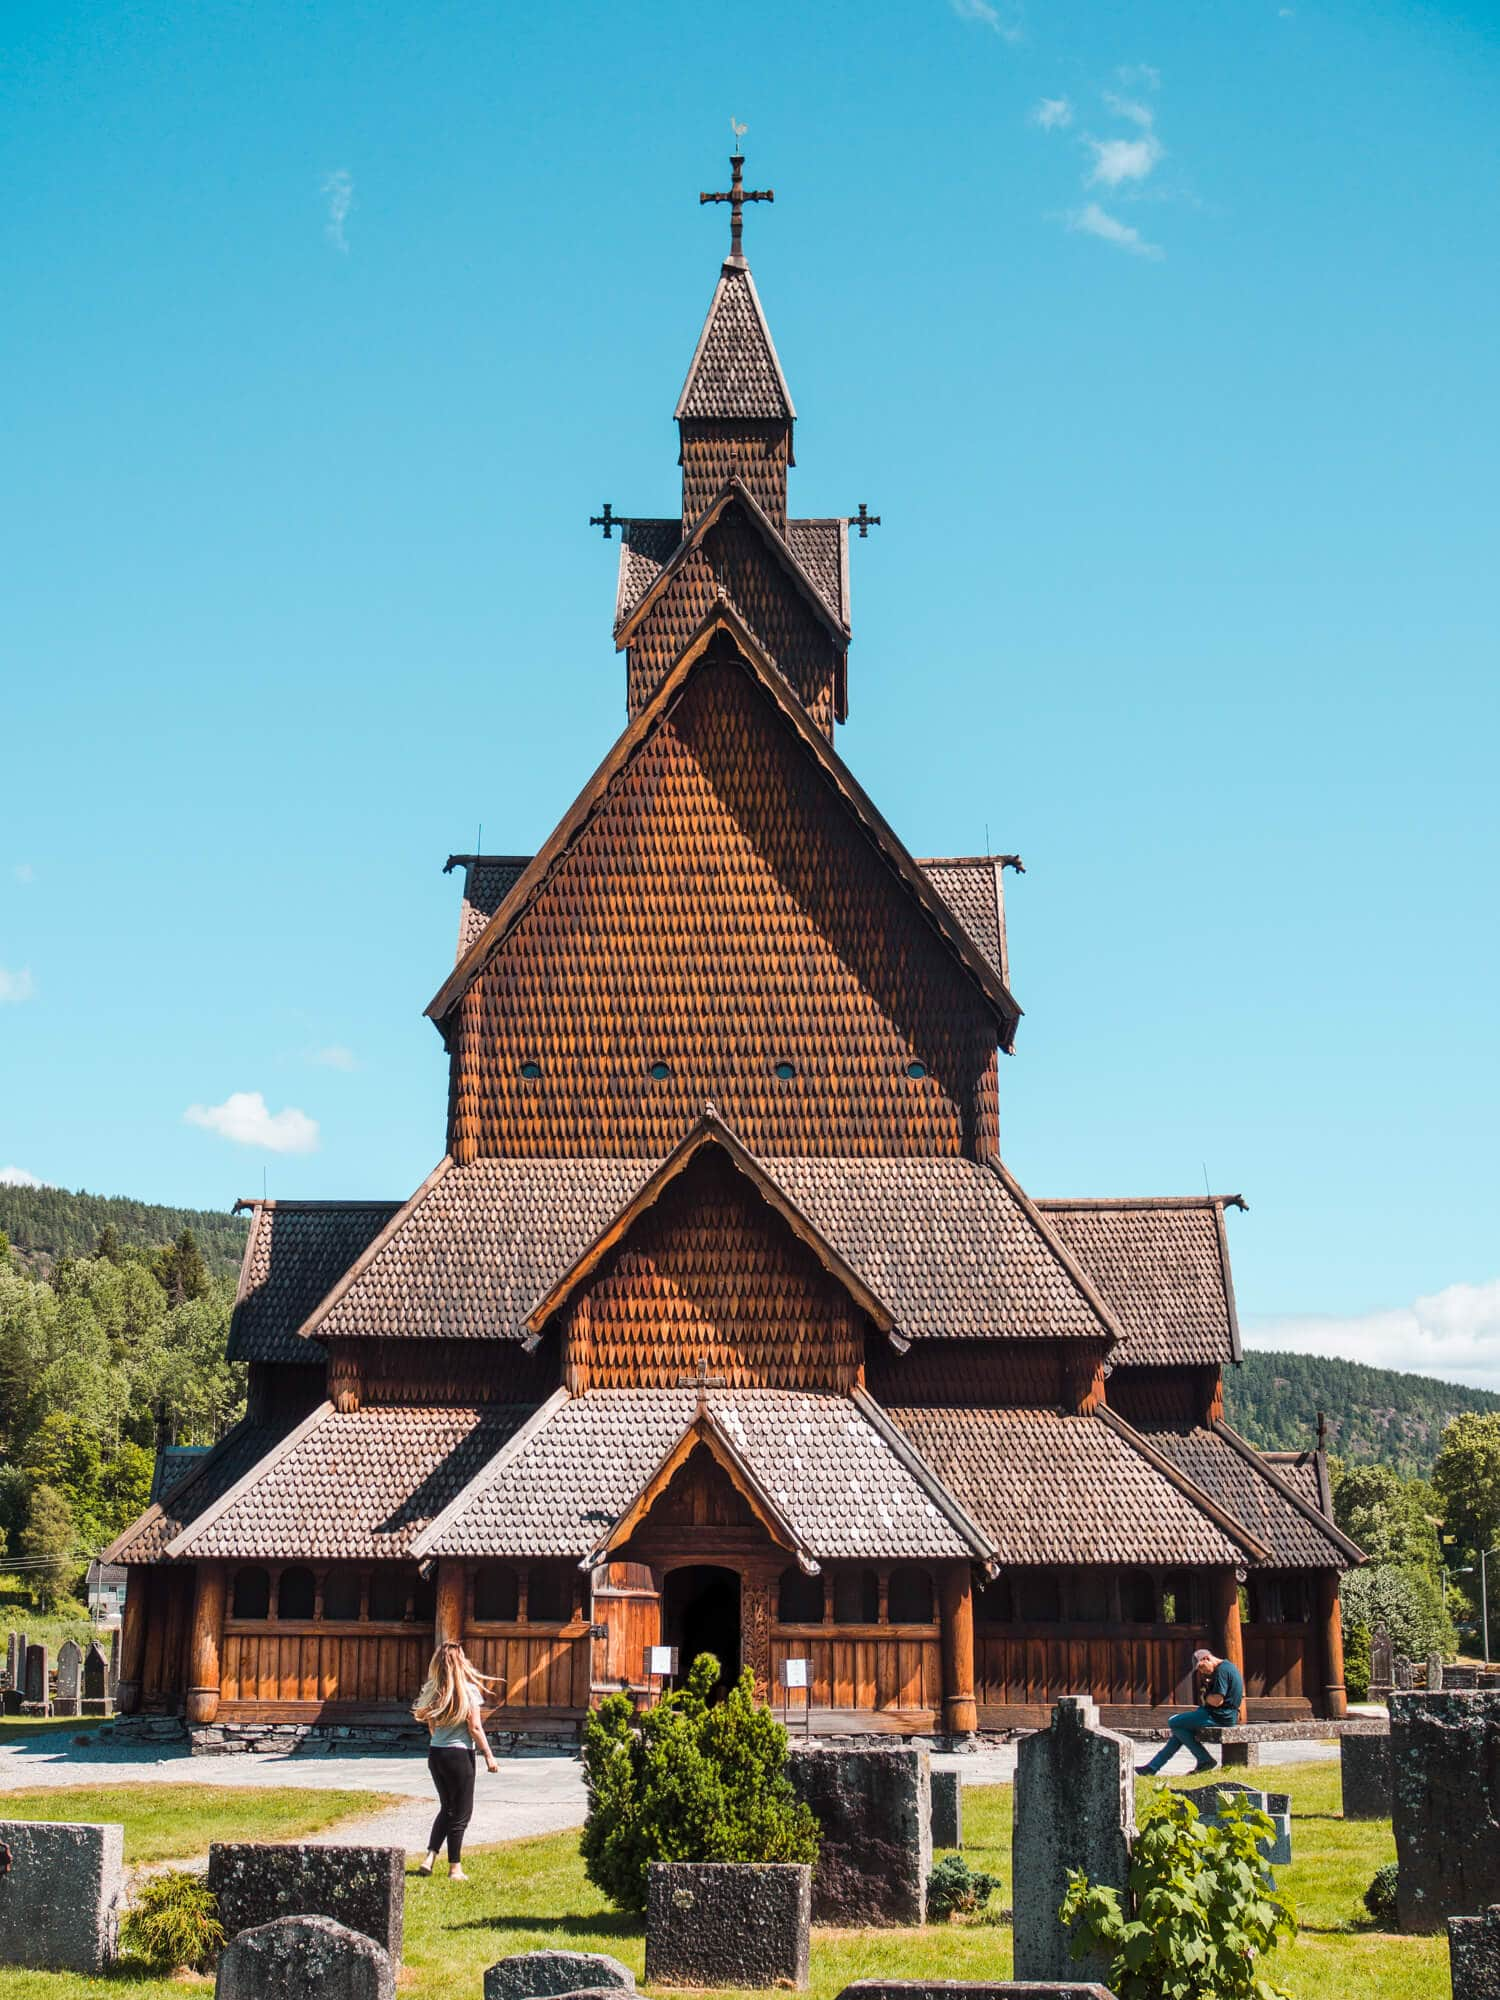 The majestic Heddal Stave Church in Telemark, Norway on a sunny day